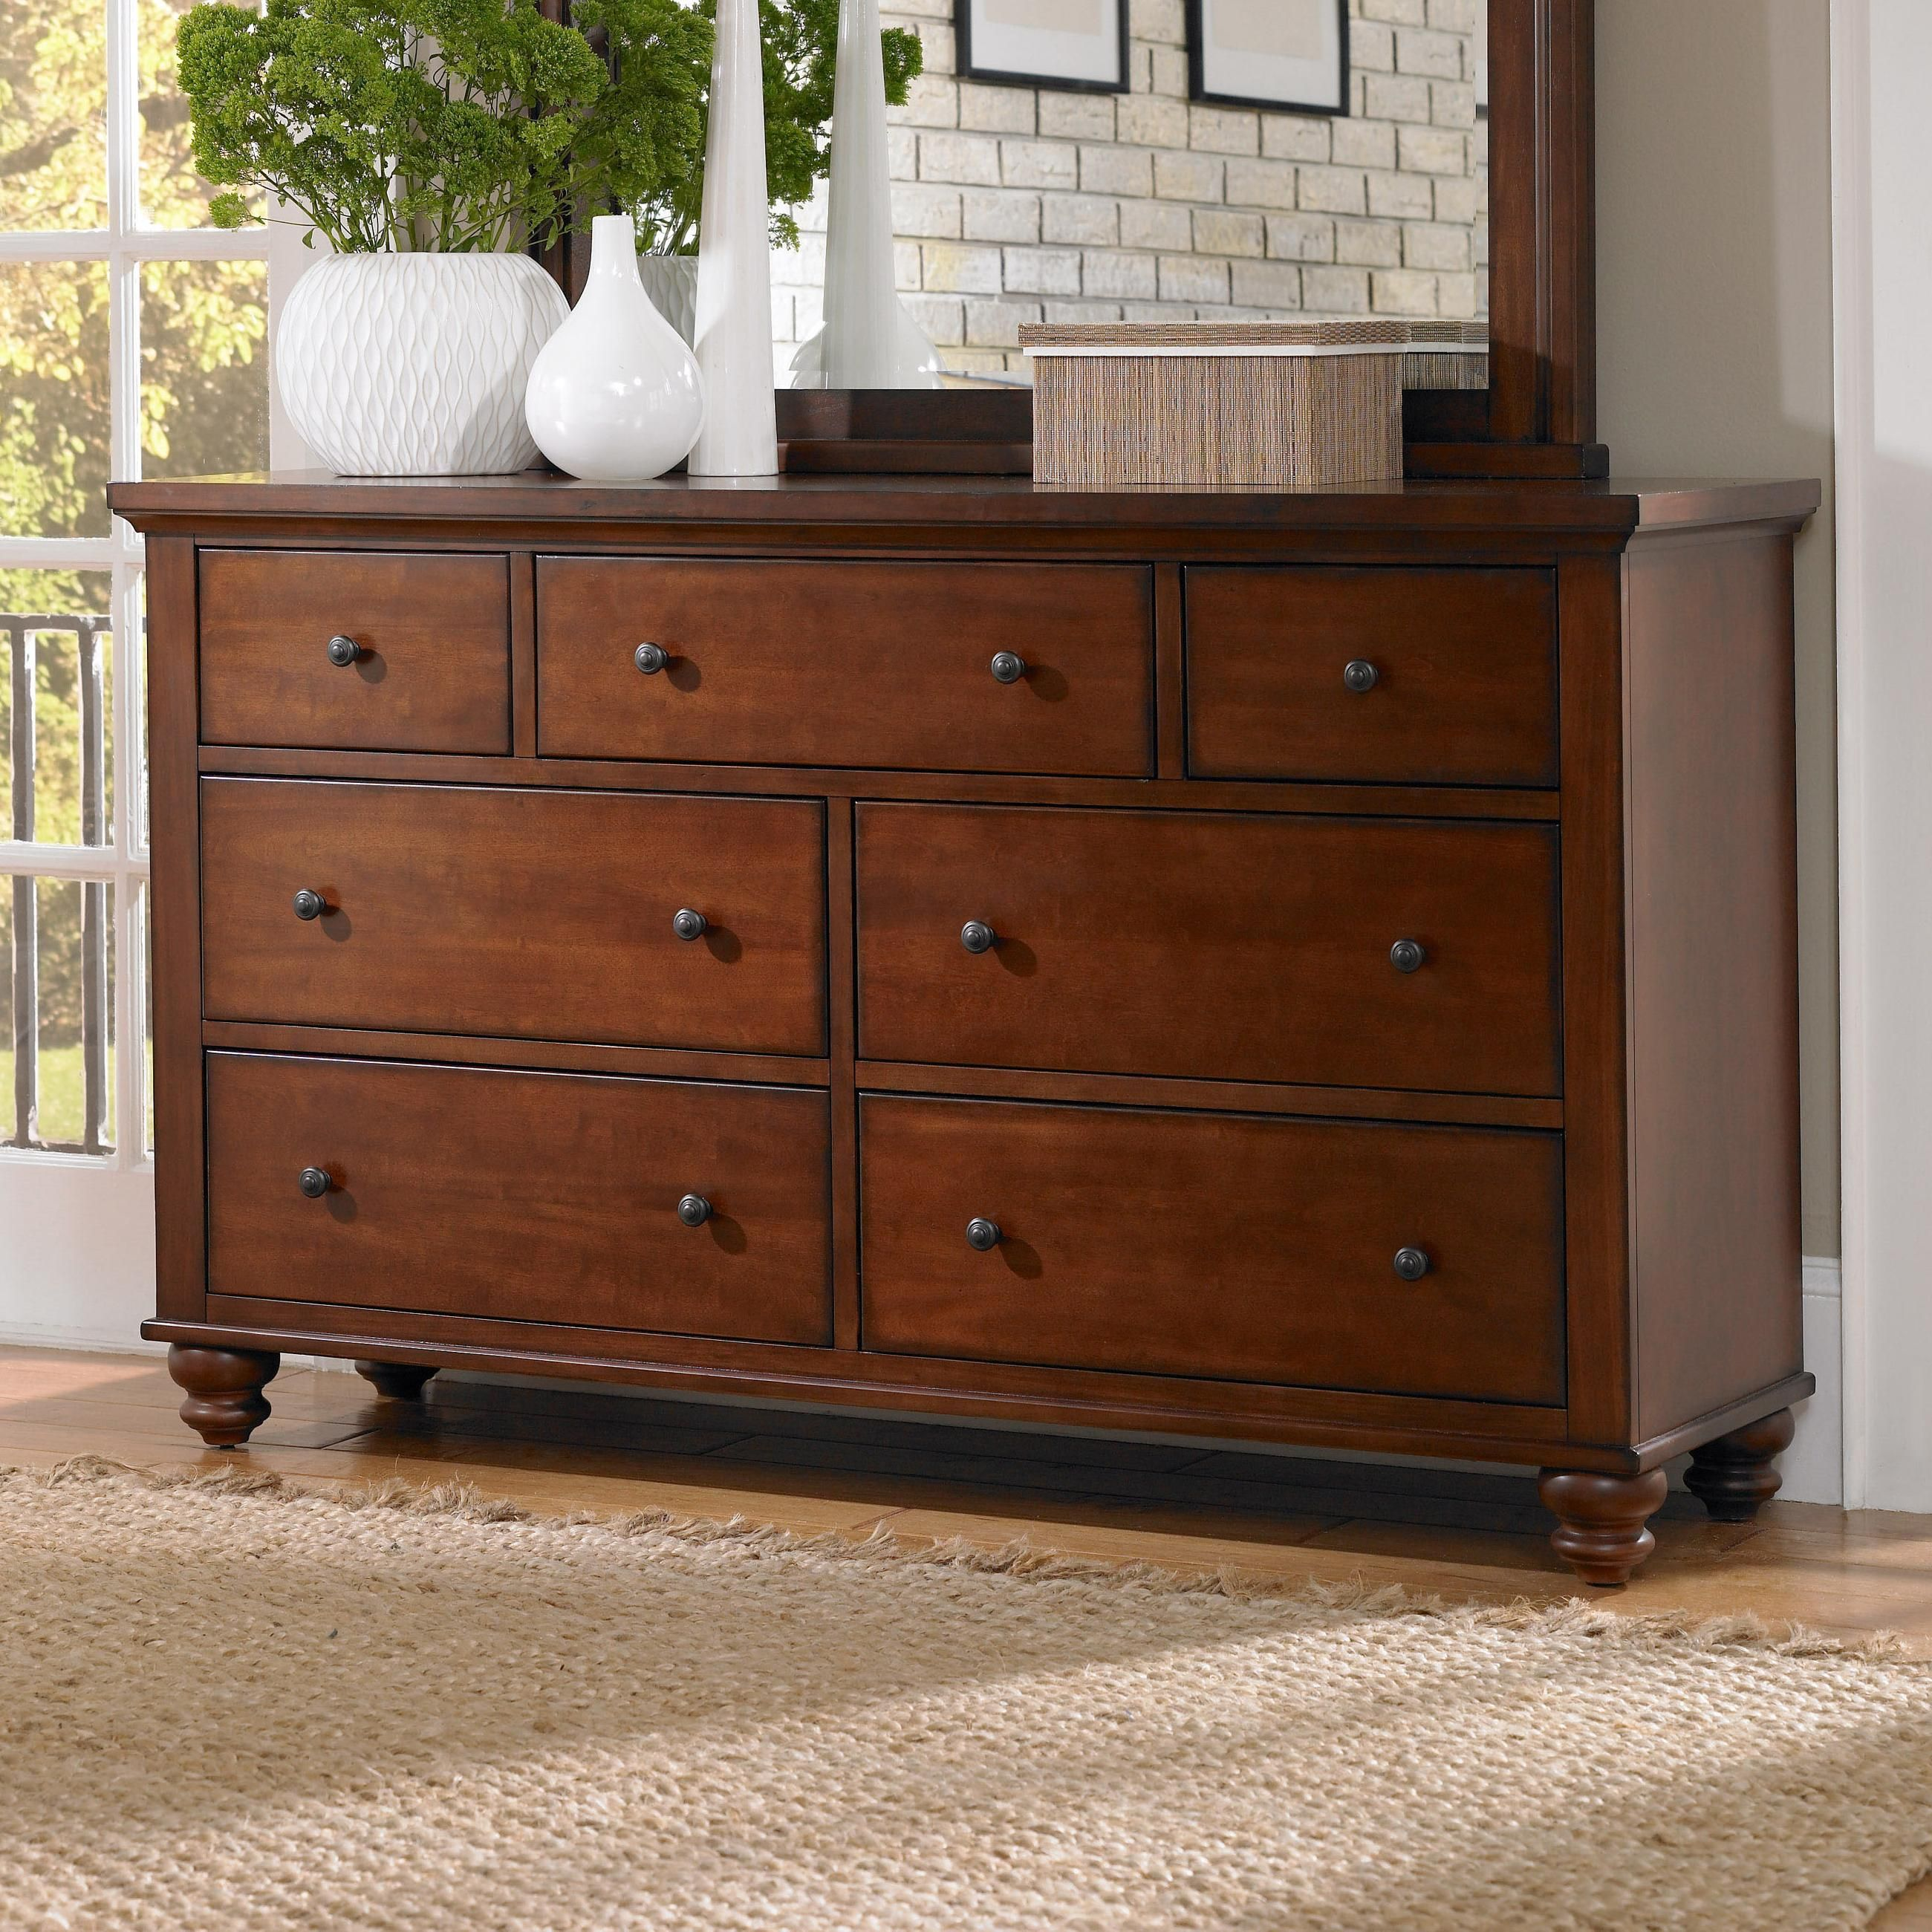 Cambridge 7-Drawer Double Dresser by Aspenhome